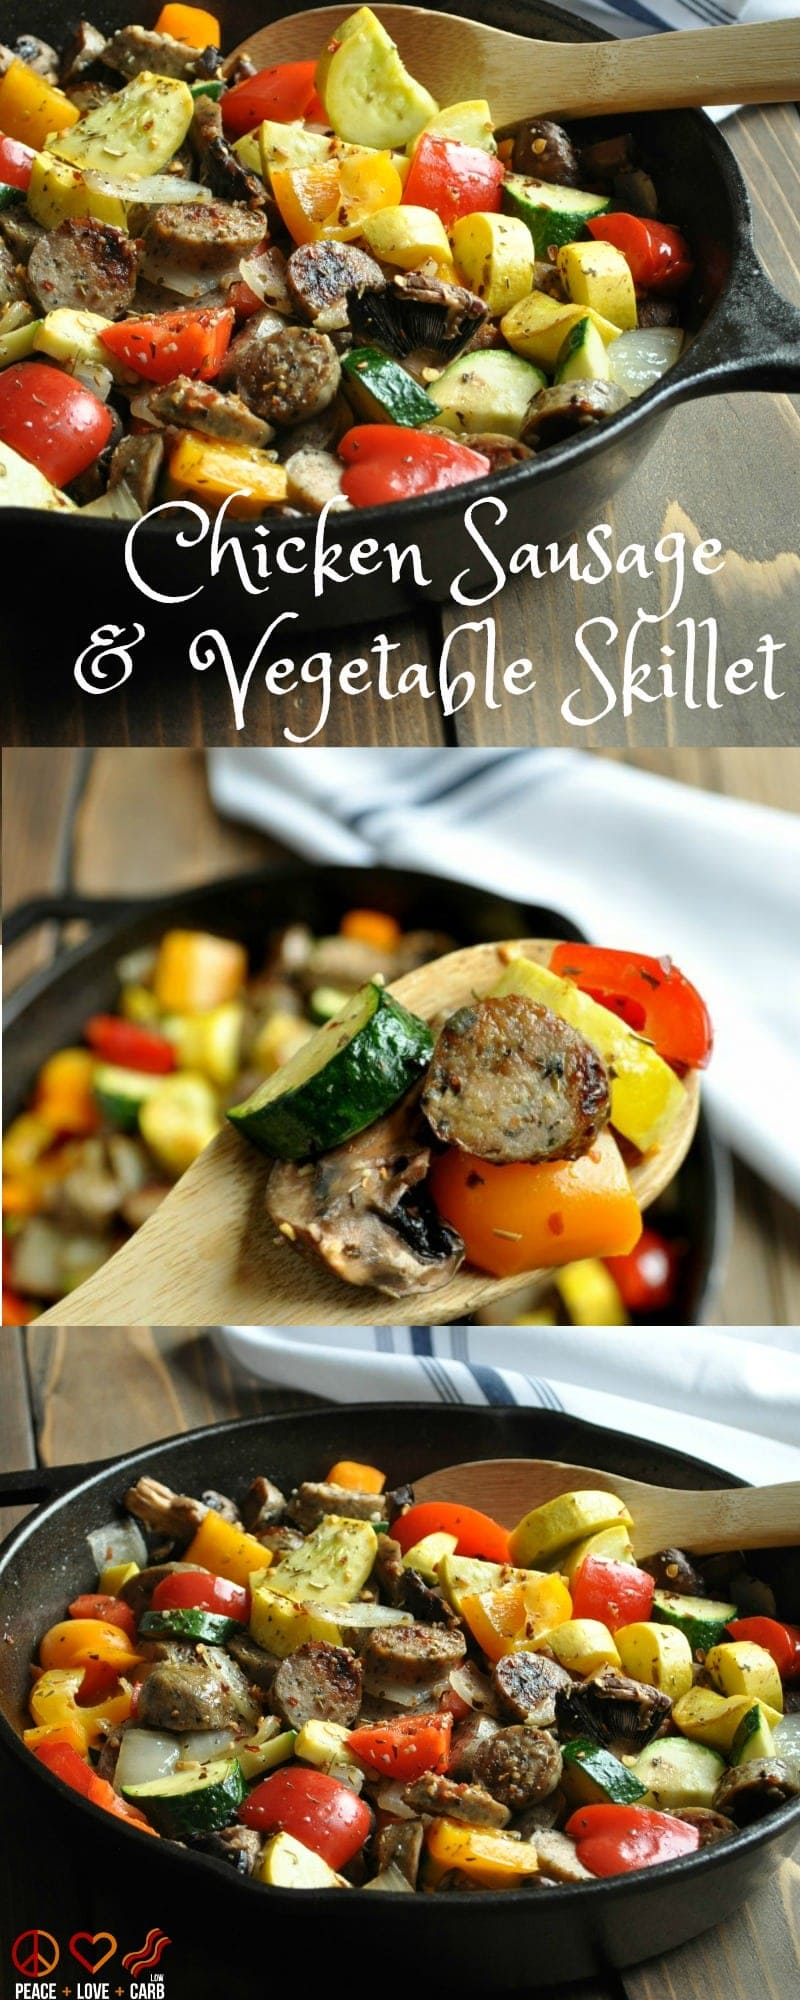 Chicken Sausage and Vegetable Skillet - Low Carb, Paleo | Peace Love and Low Carb